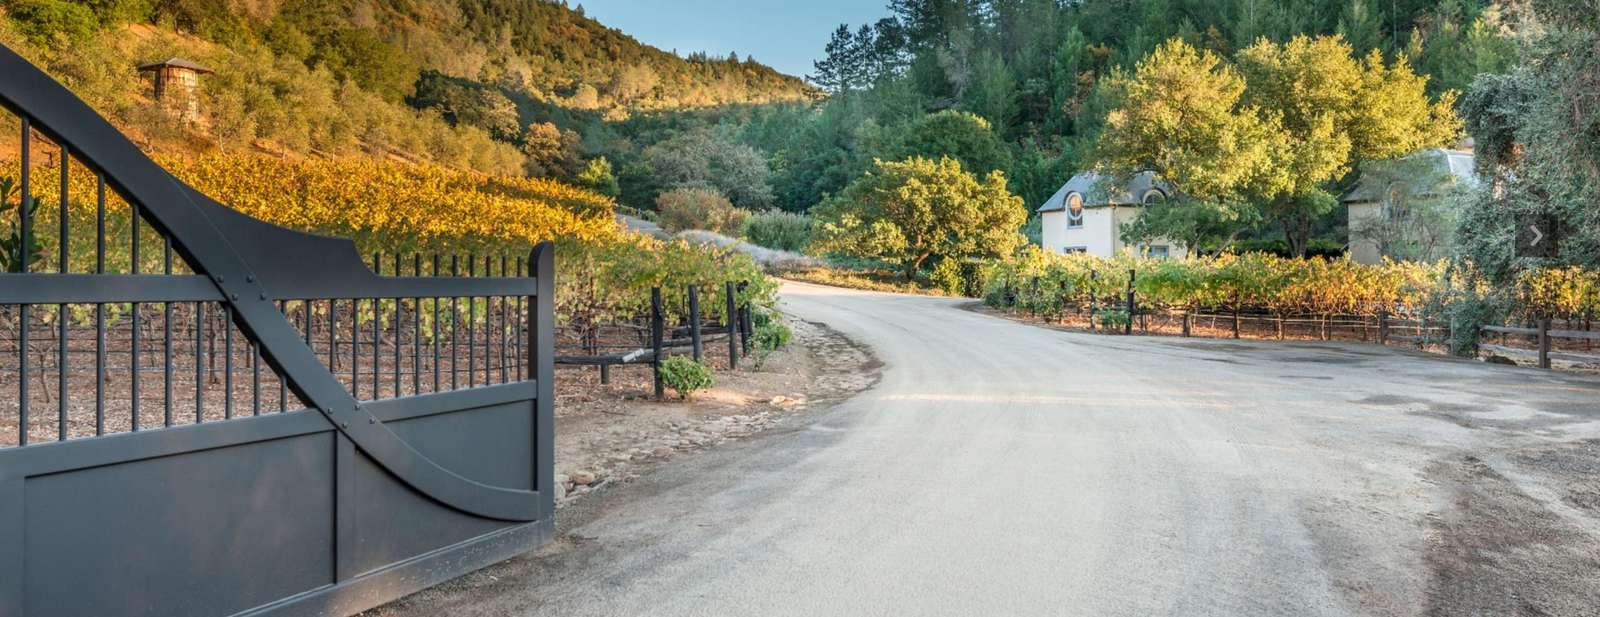 Gated entrance to estate